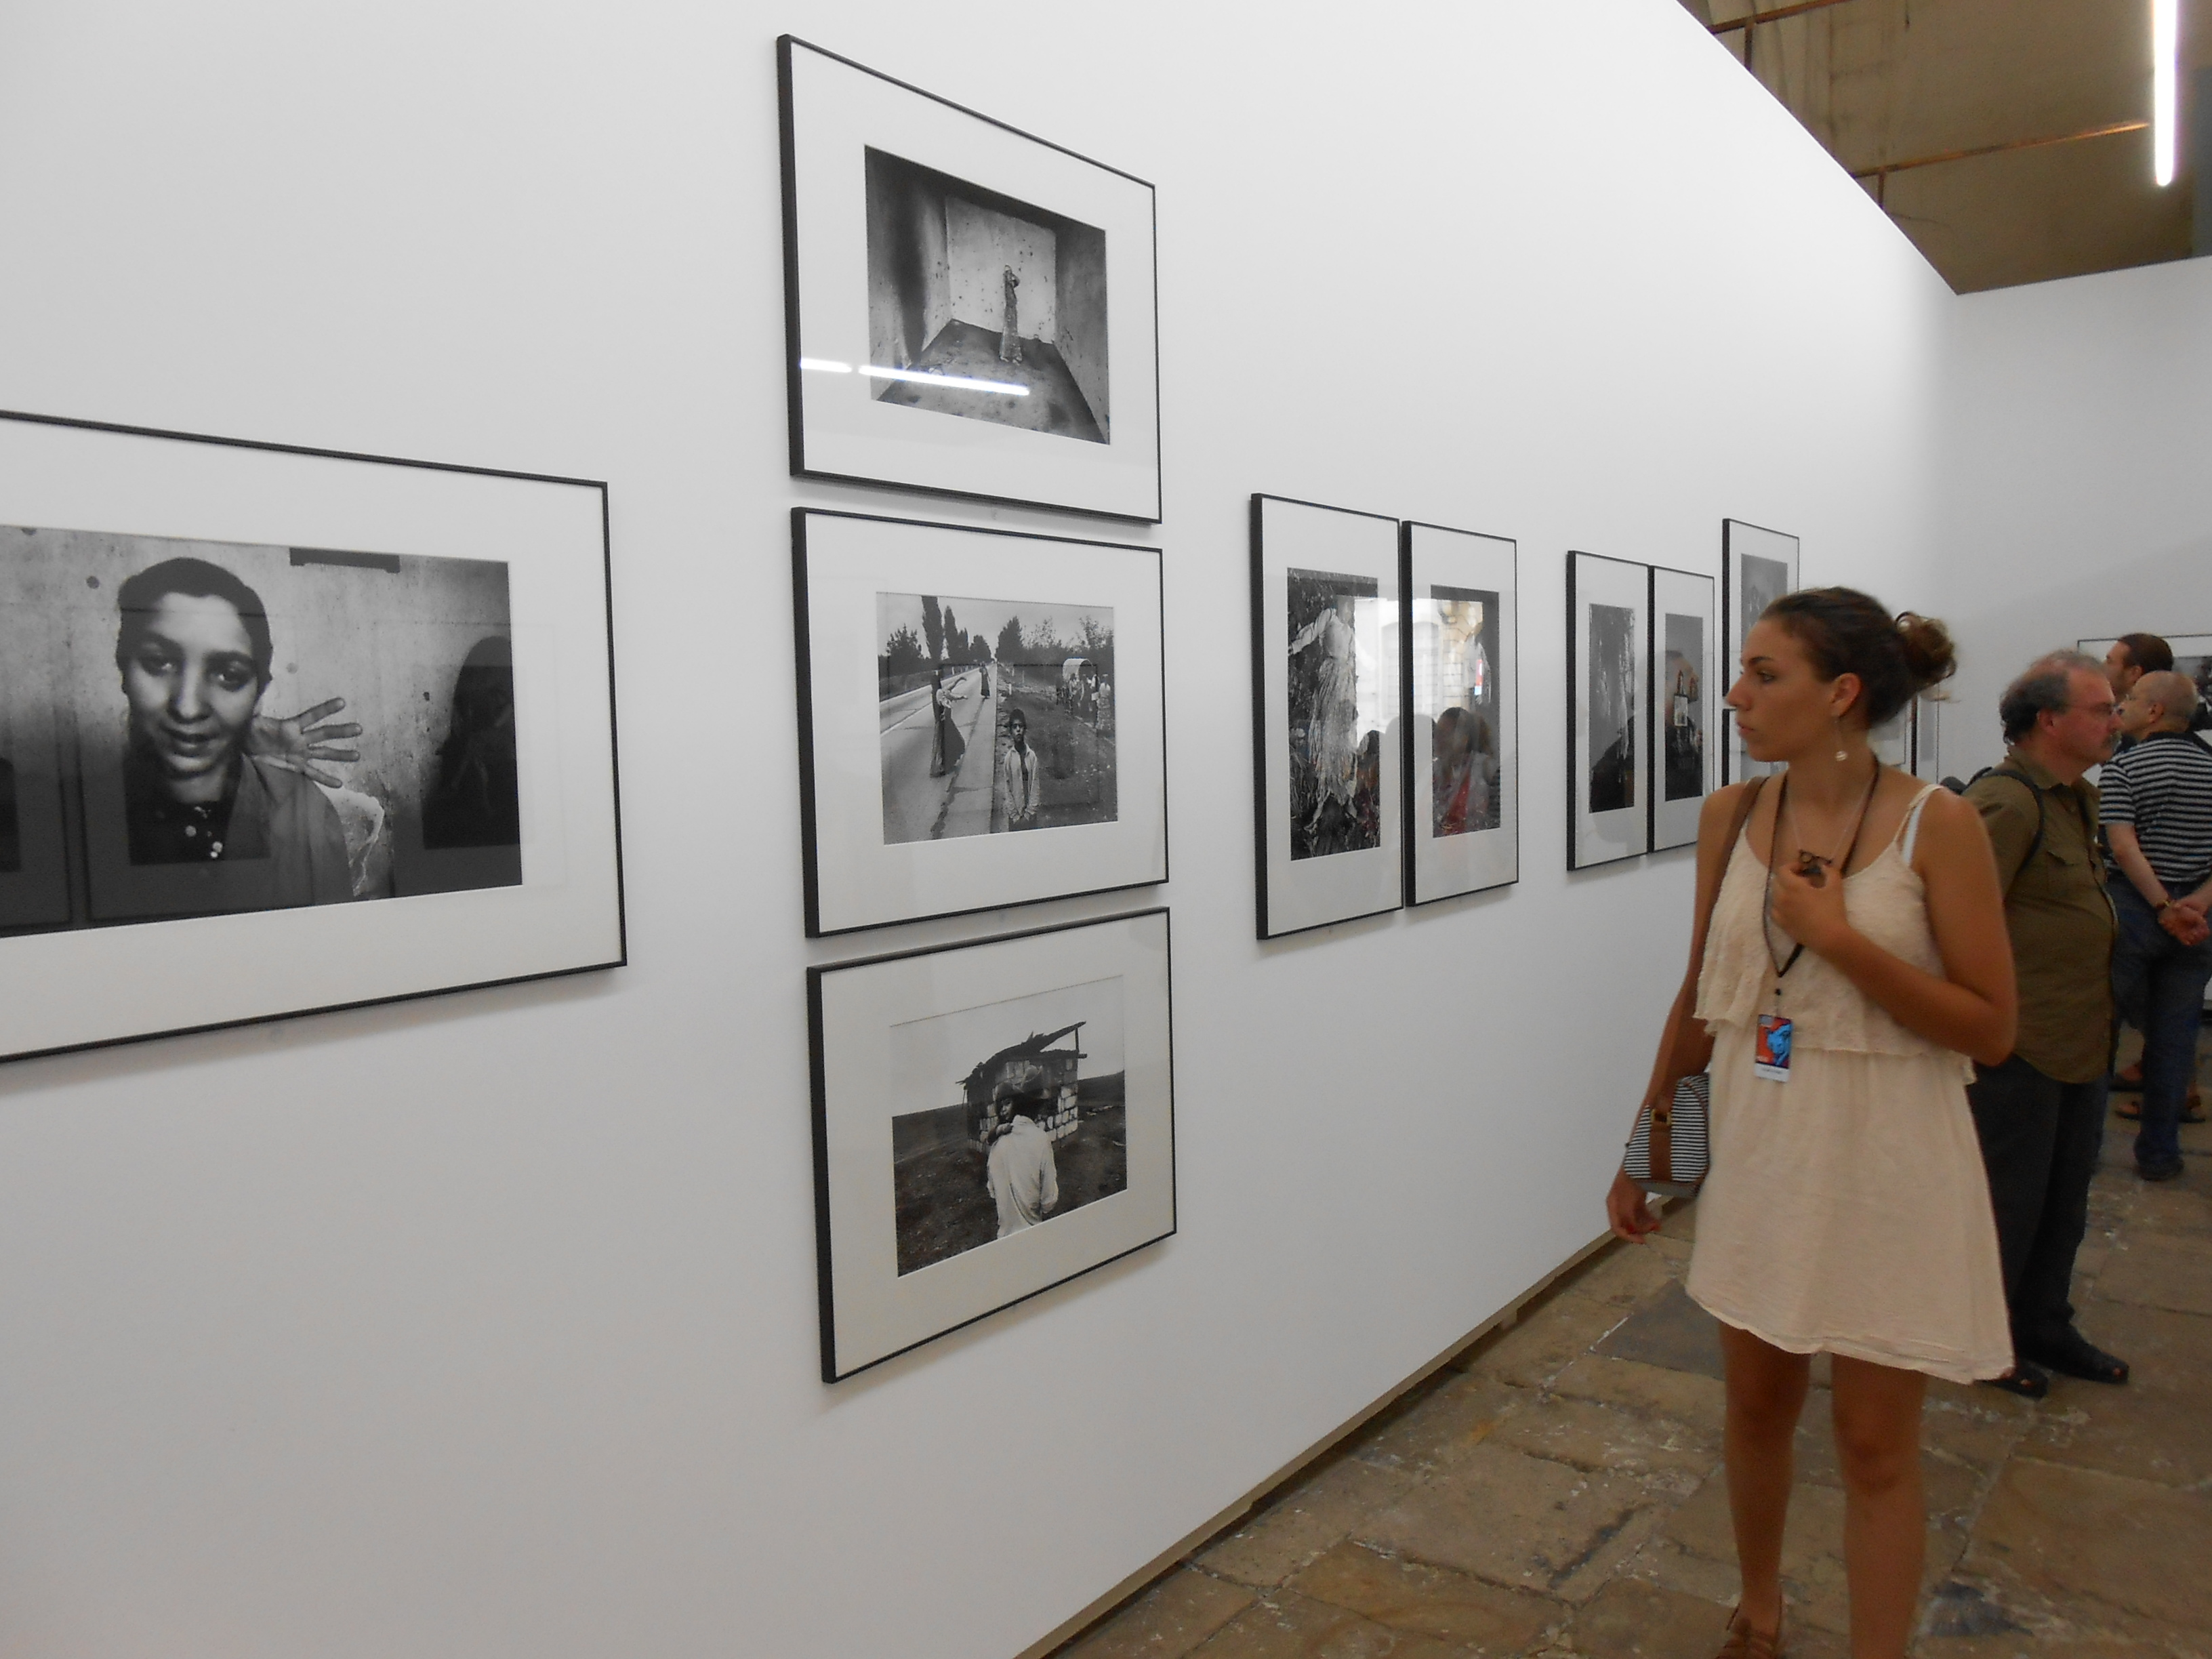 RENCONTRES ARLES PHOTOGRAPHIE 2 juillet – 23 sept 2012 VIDEO & photos